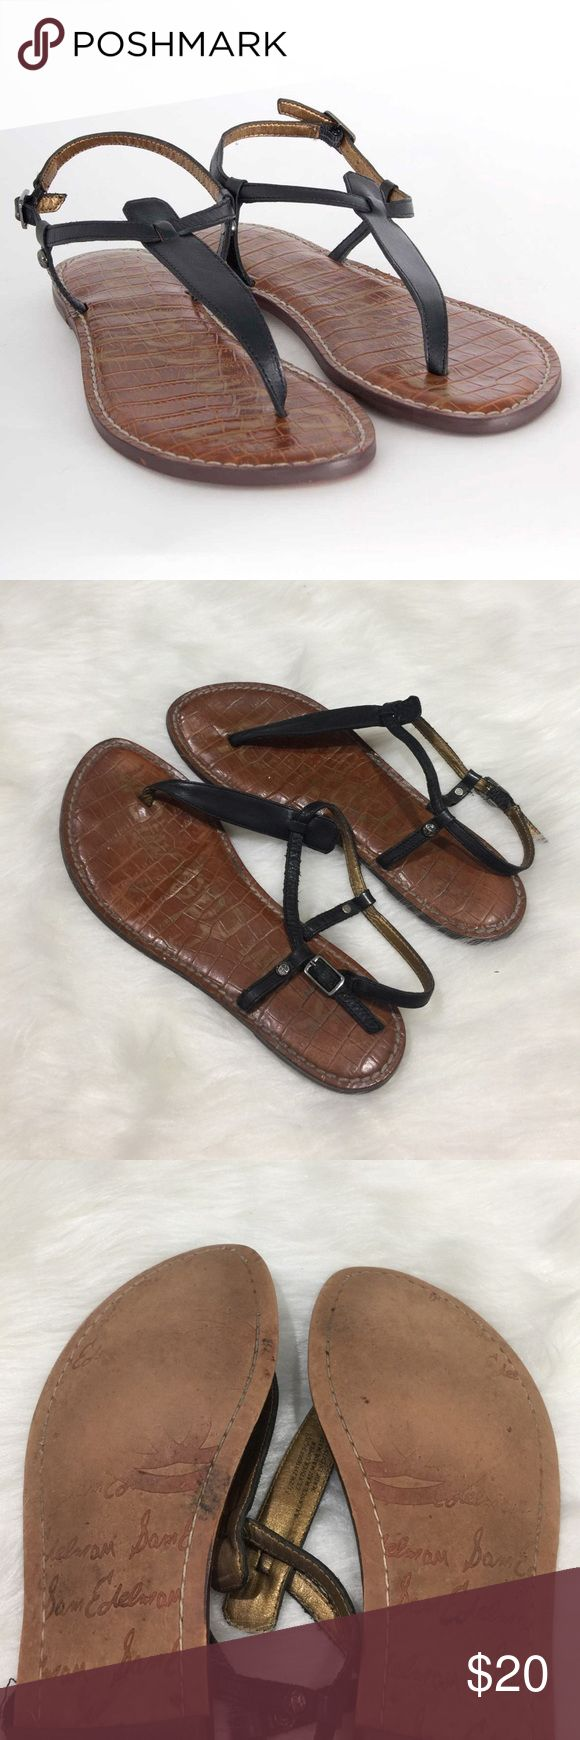 Sam Edelman Gigi Sandal These sandals are in good condition and still have lots of life! Size 7.5! Smoke and pet free home! No trades. Offers welcome! Sam Edelman Shoes Sandals